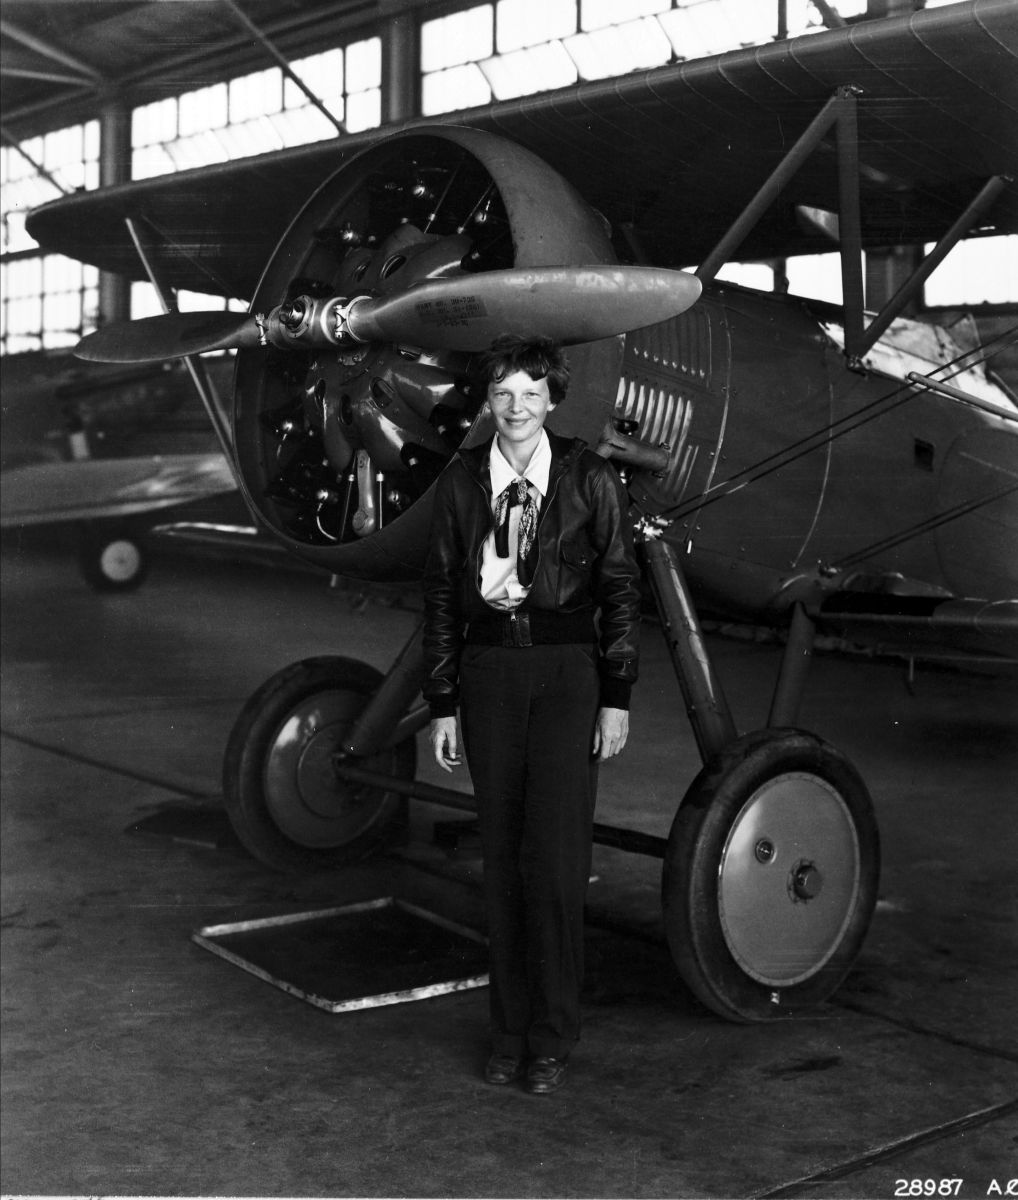 Photograph of Amelia Earhart standing in front of an airplane